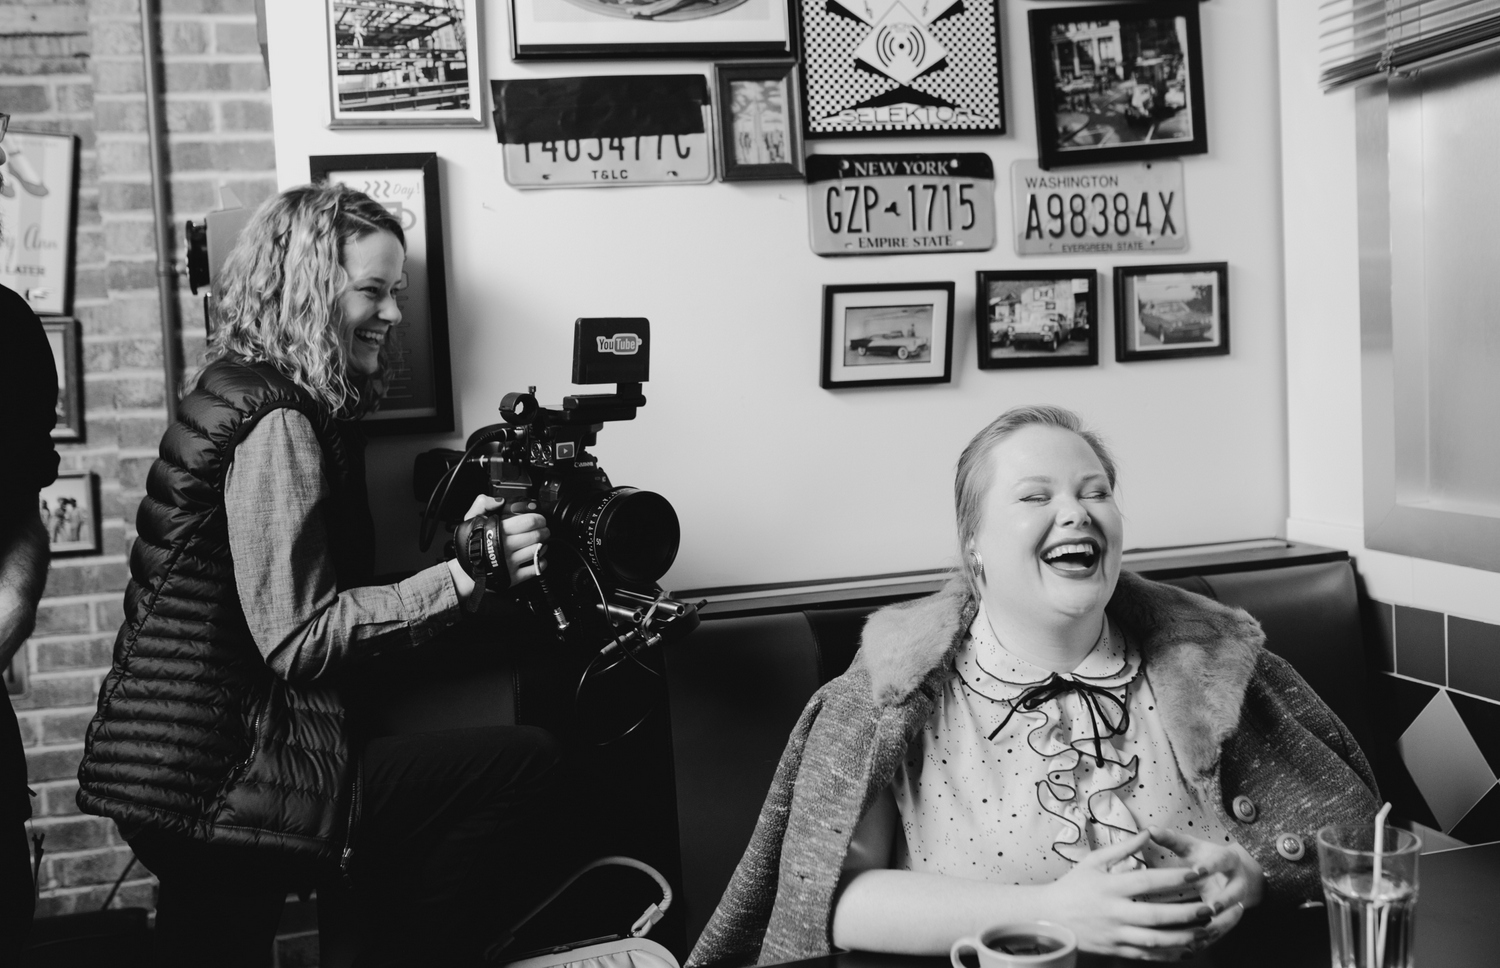 Behind the Scenes of Queens of Daytime starring plus size actress, Jen Ponton.